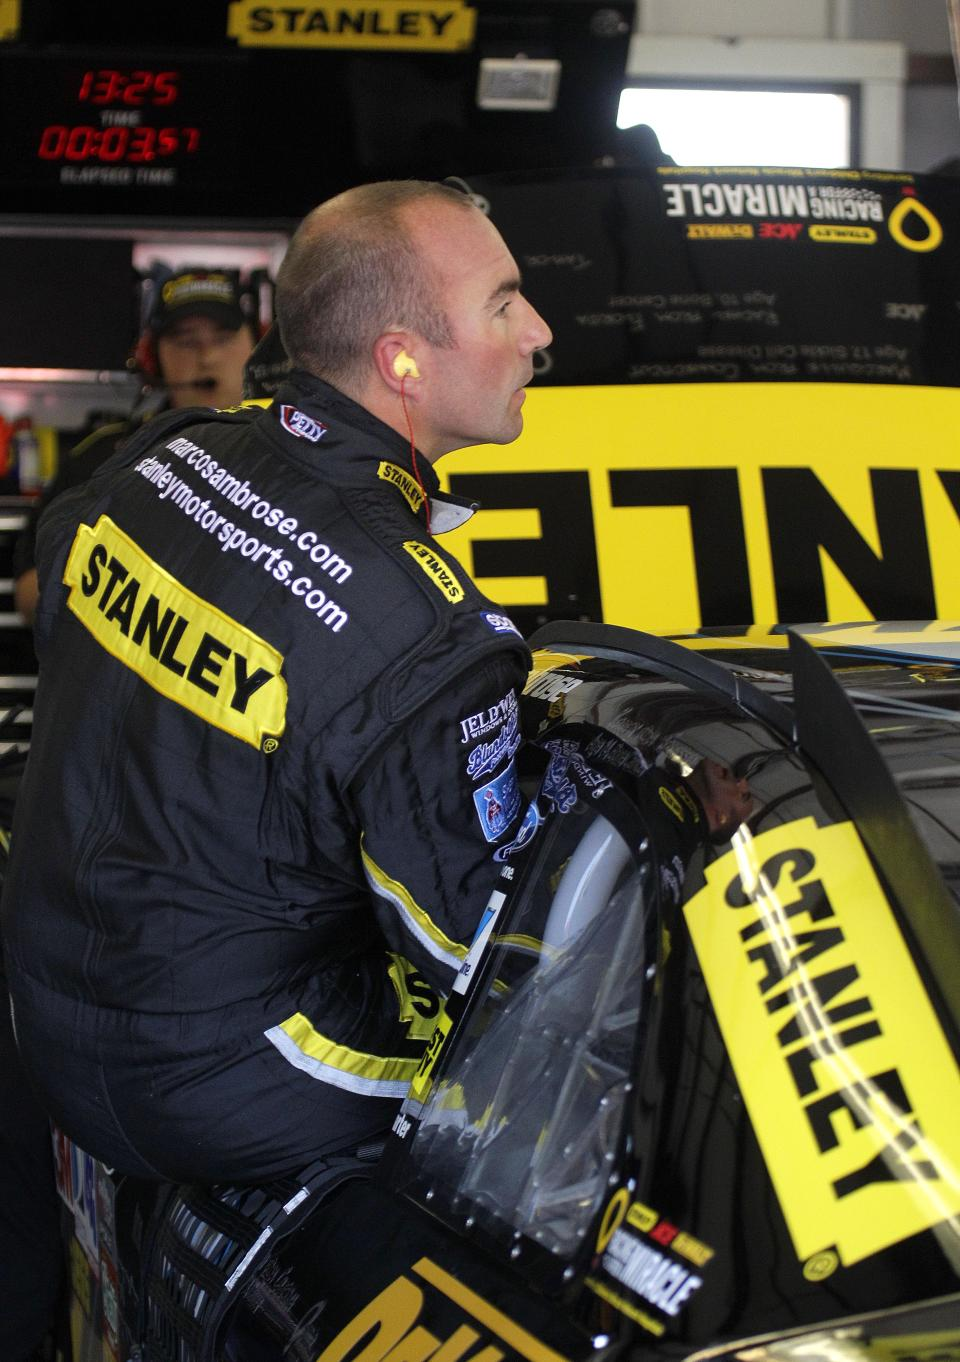 NASCAR driver Marcos Ambrose emerges from his car after practicing for Sunday's NASCAR Toyota Save Mart 350 auto race, Friday, June 24, 2011, at Infineon Raceway in Sonoma, Calif. (AP Photo/Ben Margot)